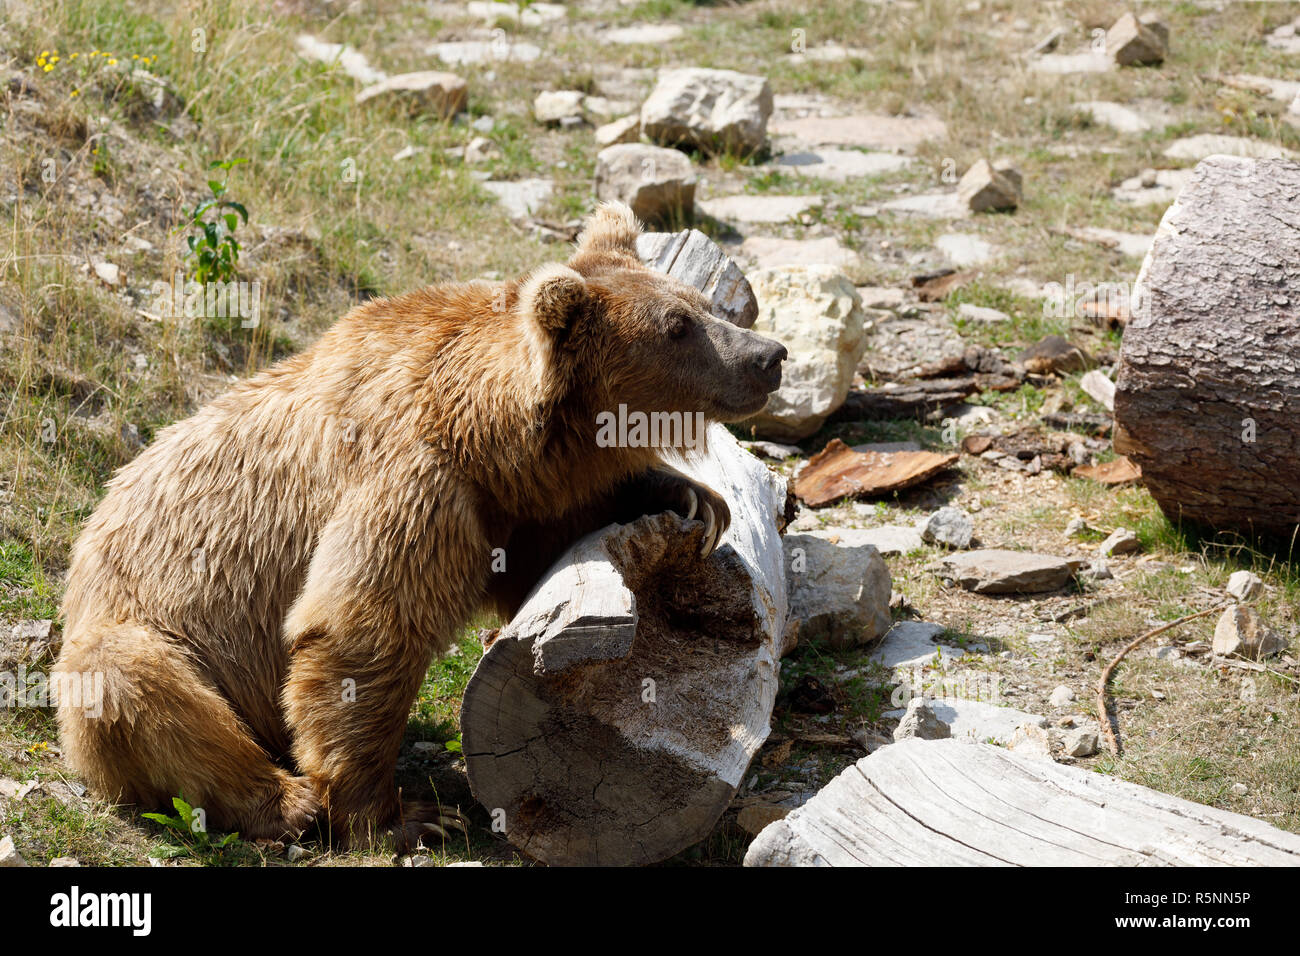 Himalayan brown bear (Ursus arctos isabellinus) Stock Photo